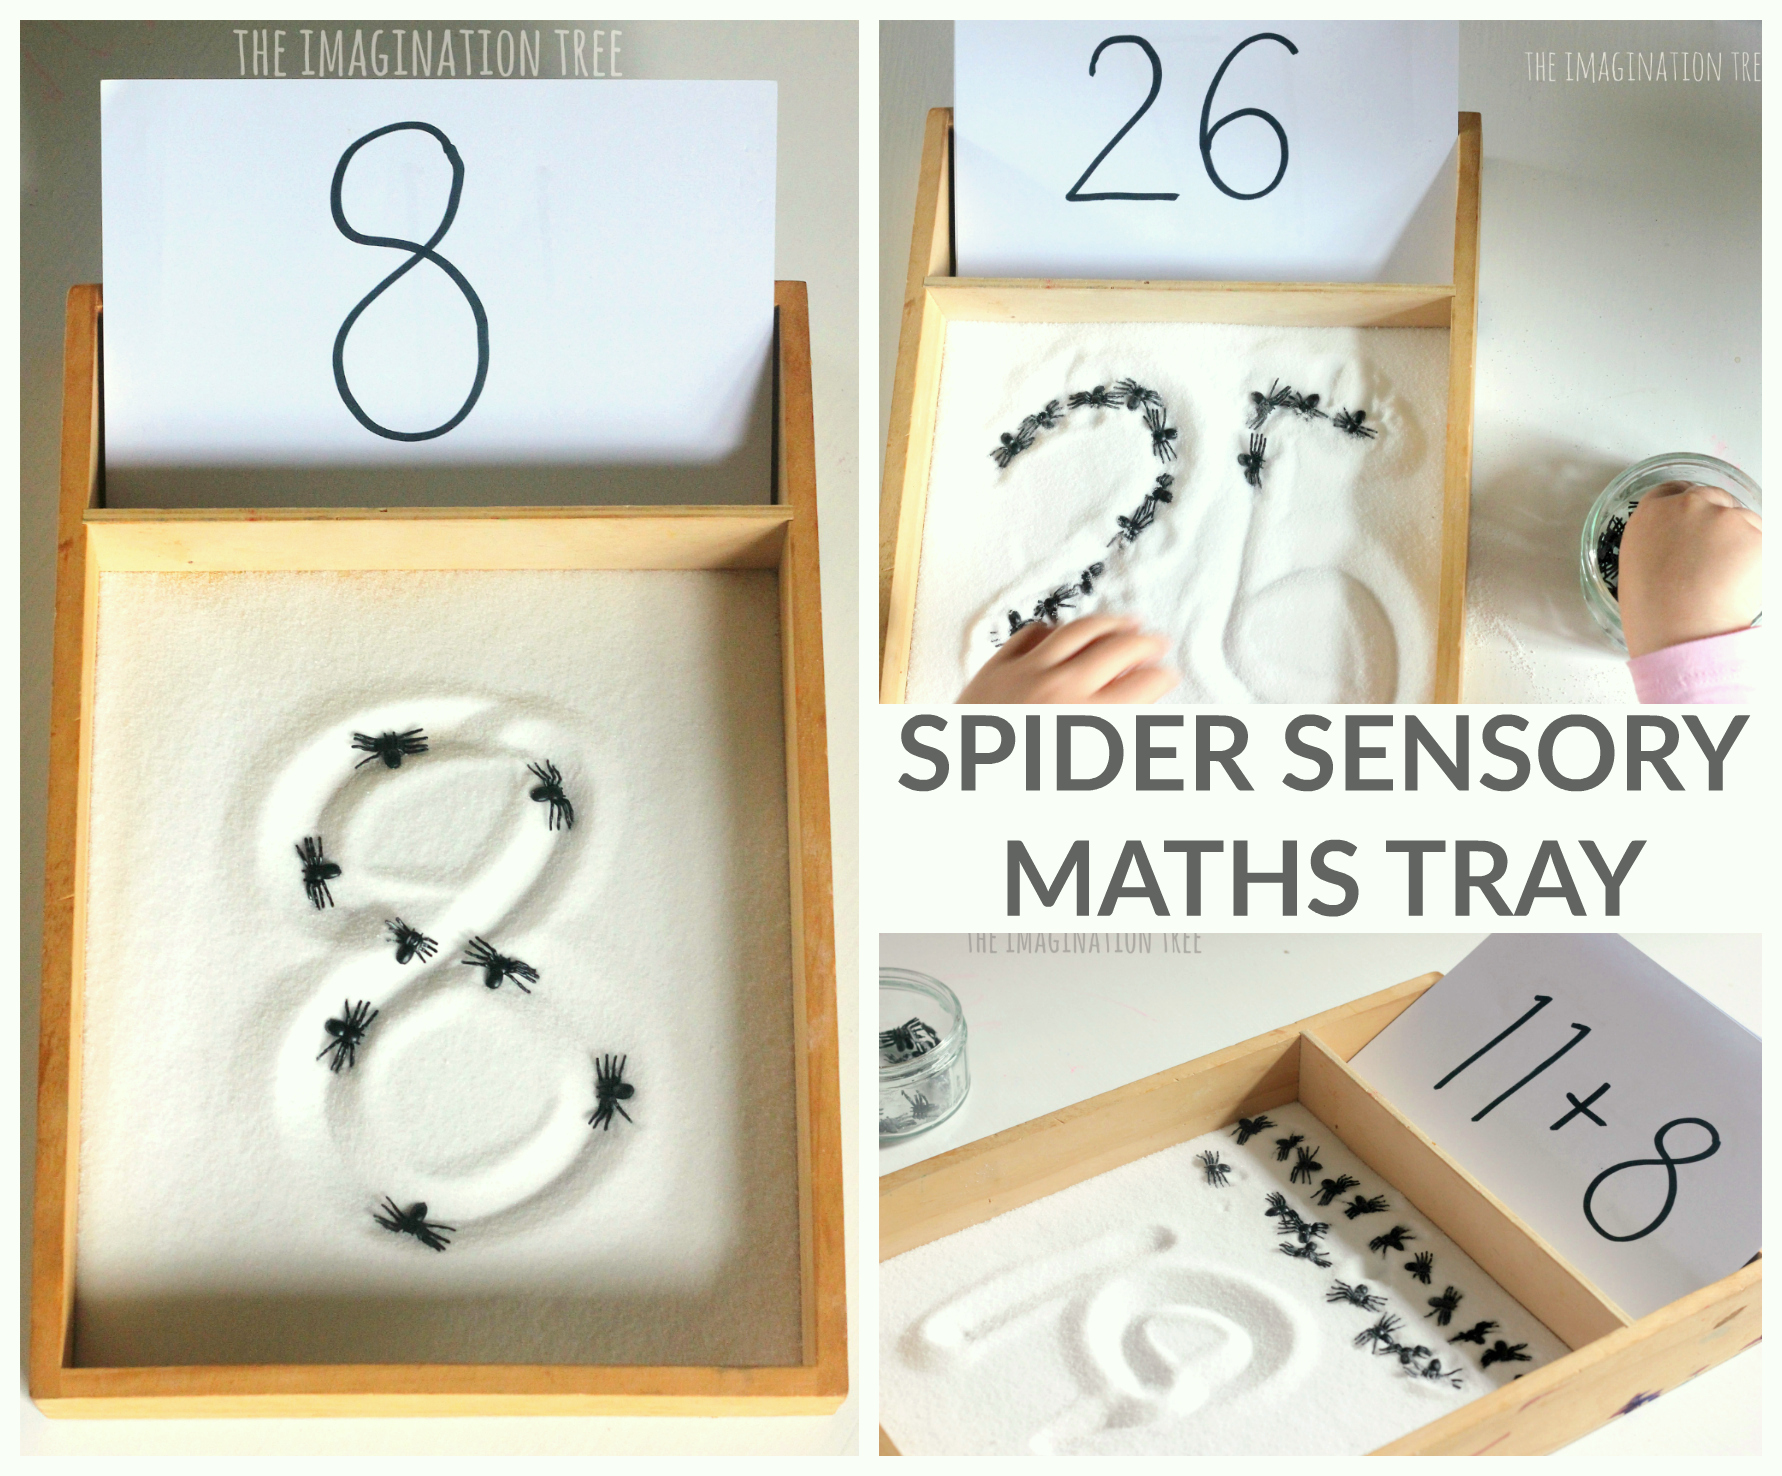 siliconpumps besides 3 Phase Motor  s Calculation besides Xx3230 further Counting Spiders Sensory Maths Tray together with Three Phase electric power. on single phse motor